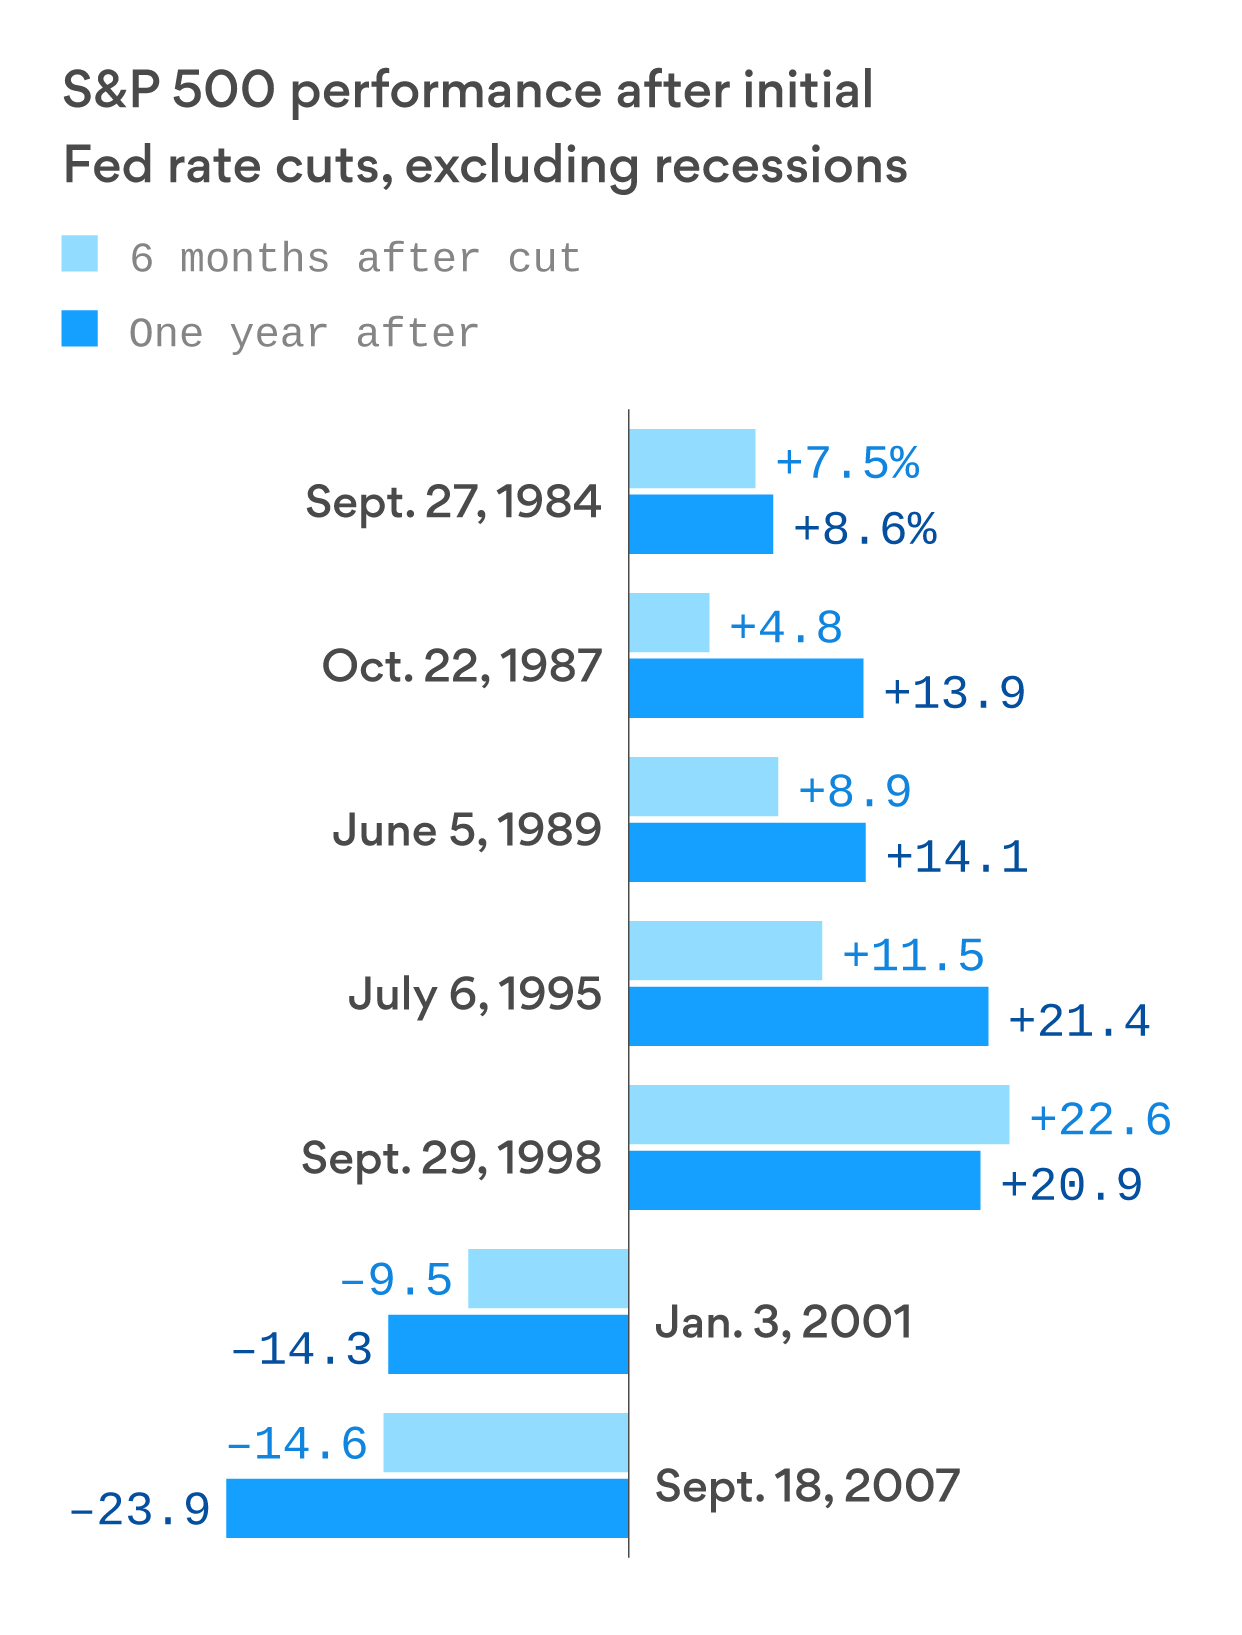 With a Fed rate cut coming, analysts expect the stock market to keep rising